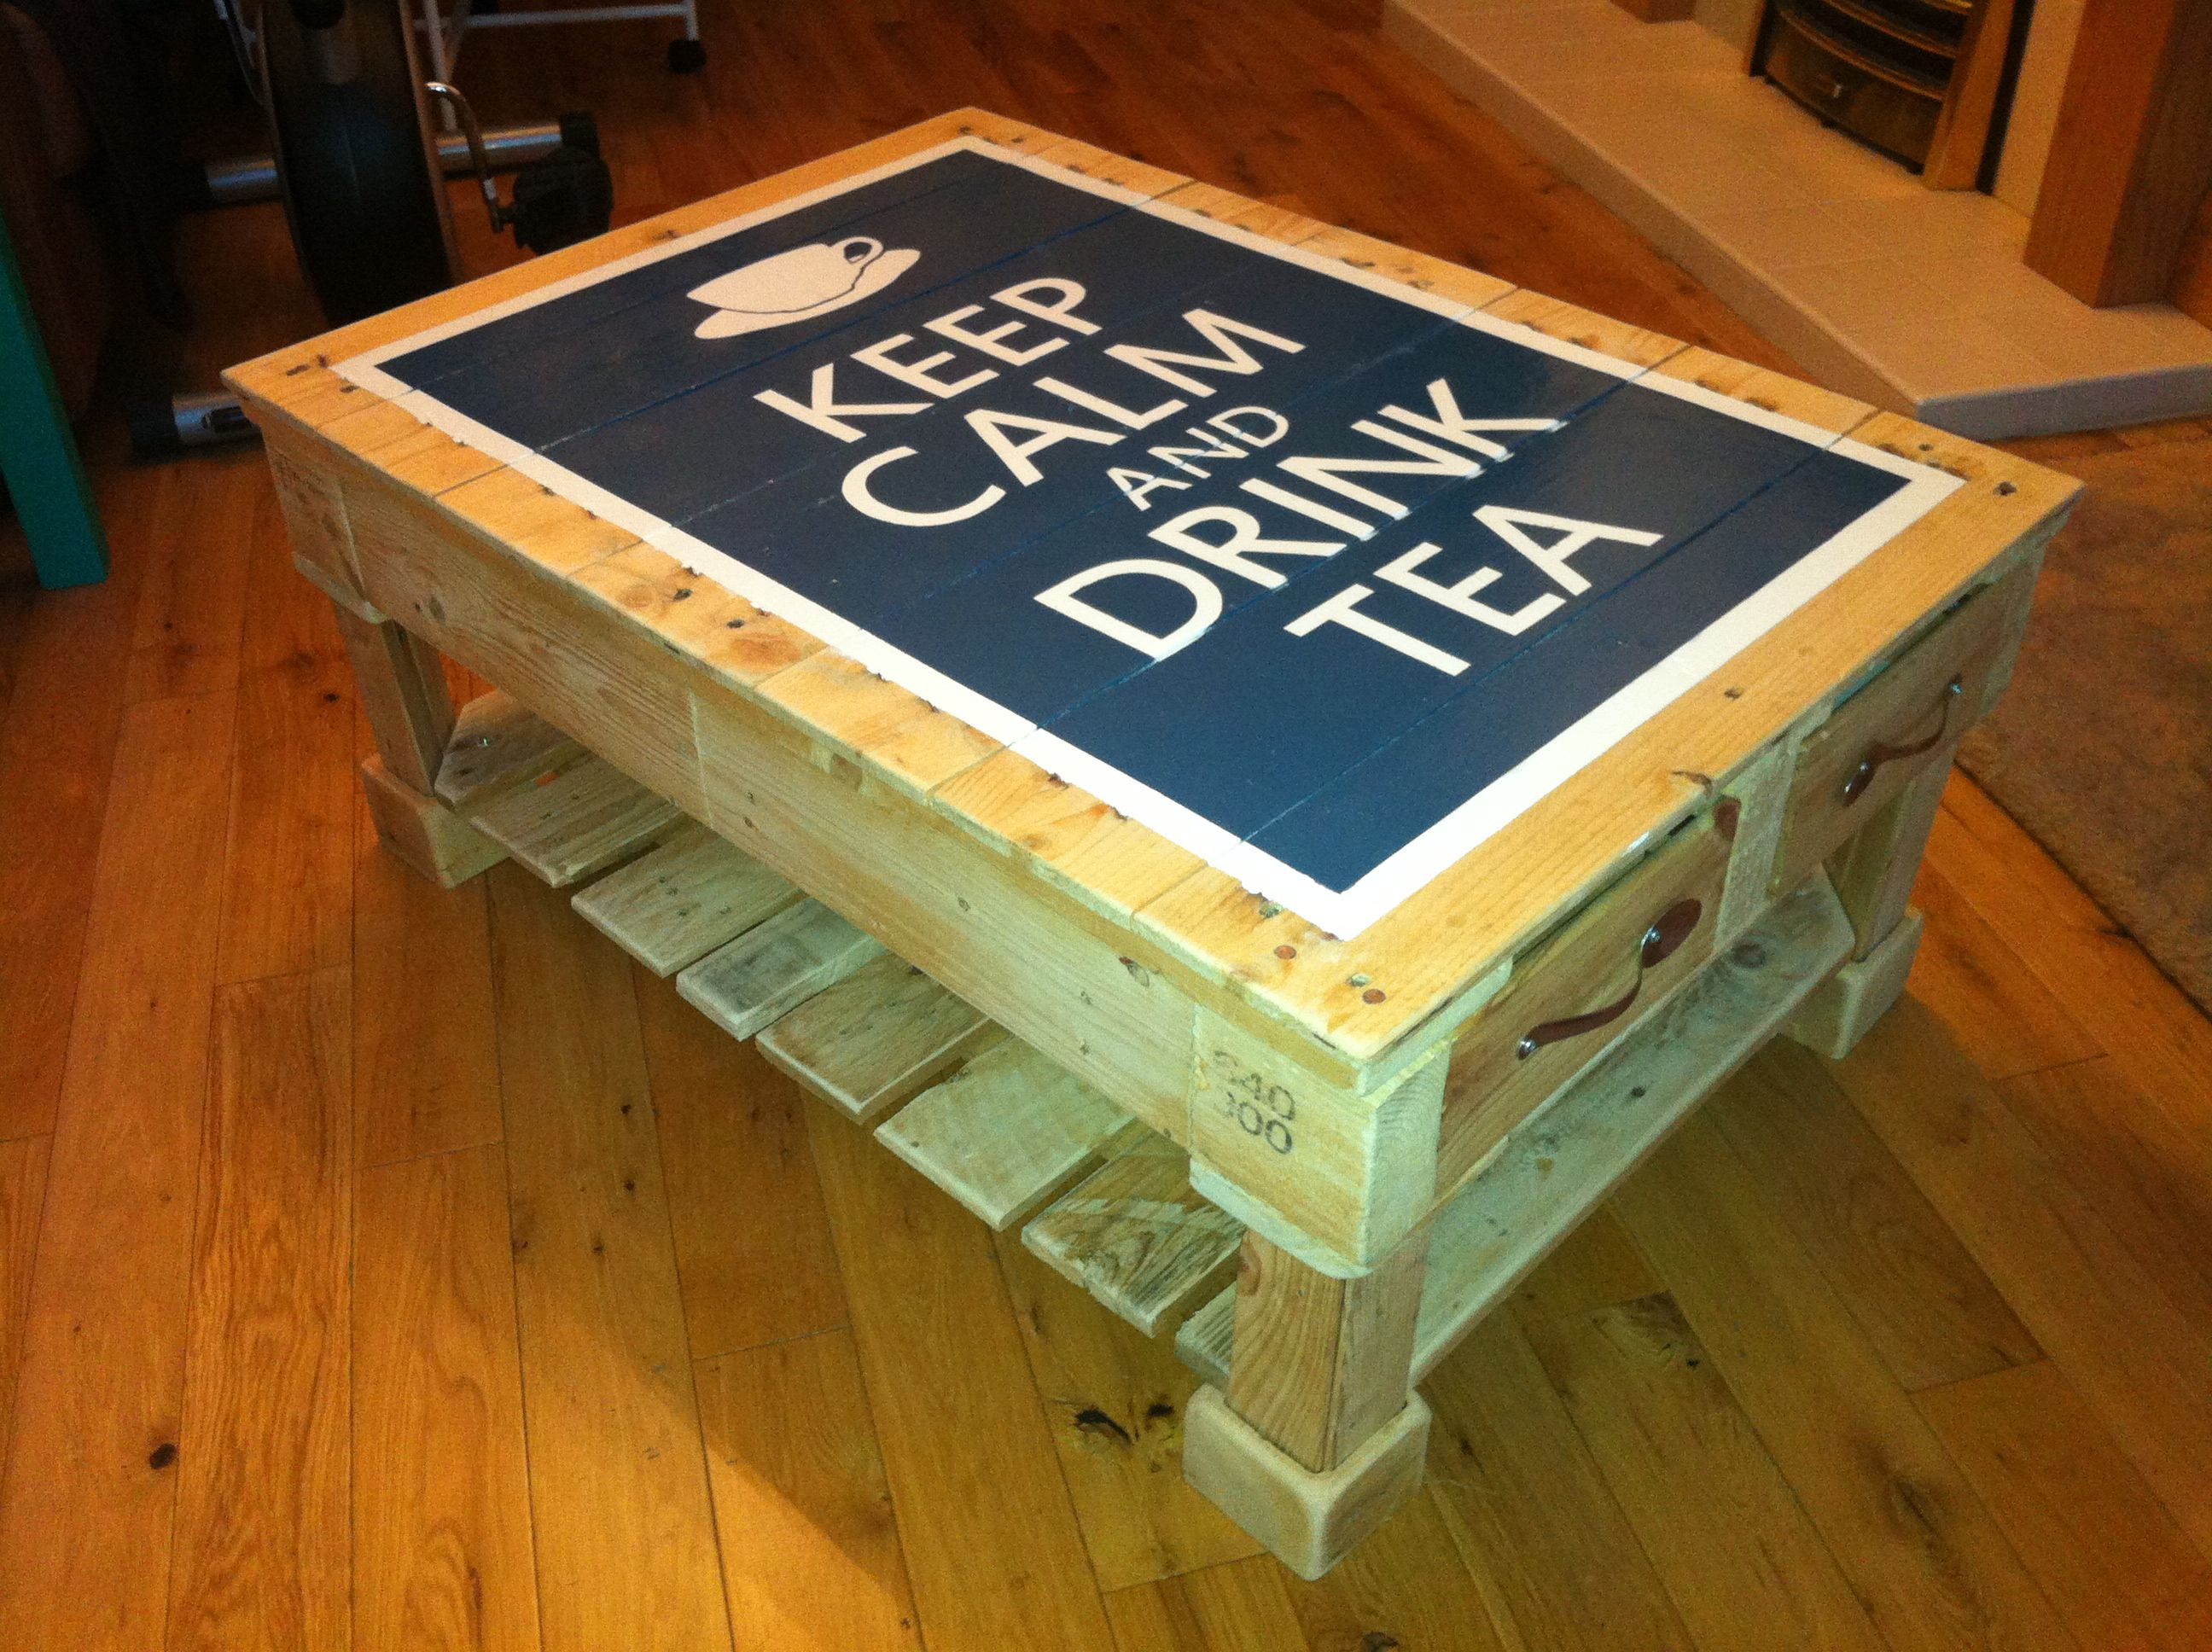 Reused Furniture upcycled pallet with cute teaspoon draw handles! #upcycle #crate